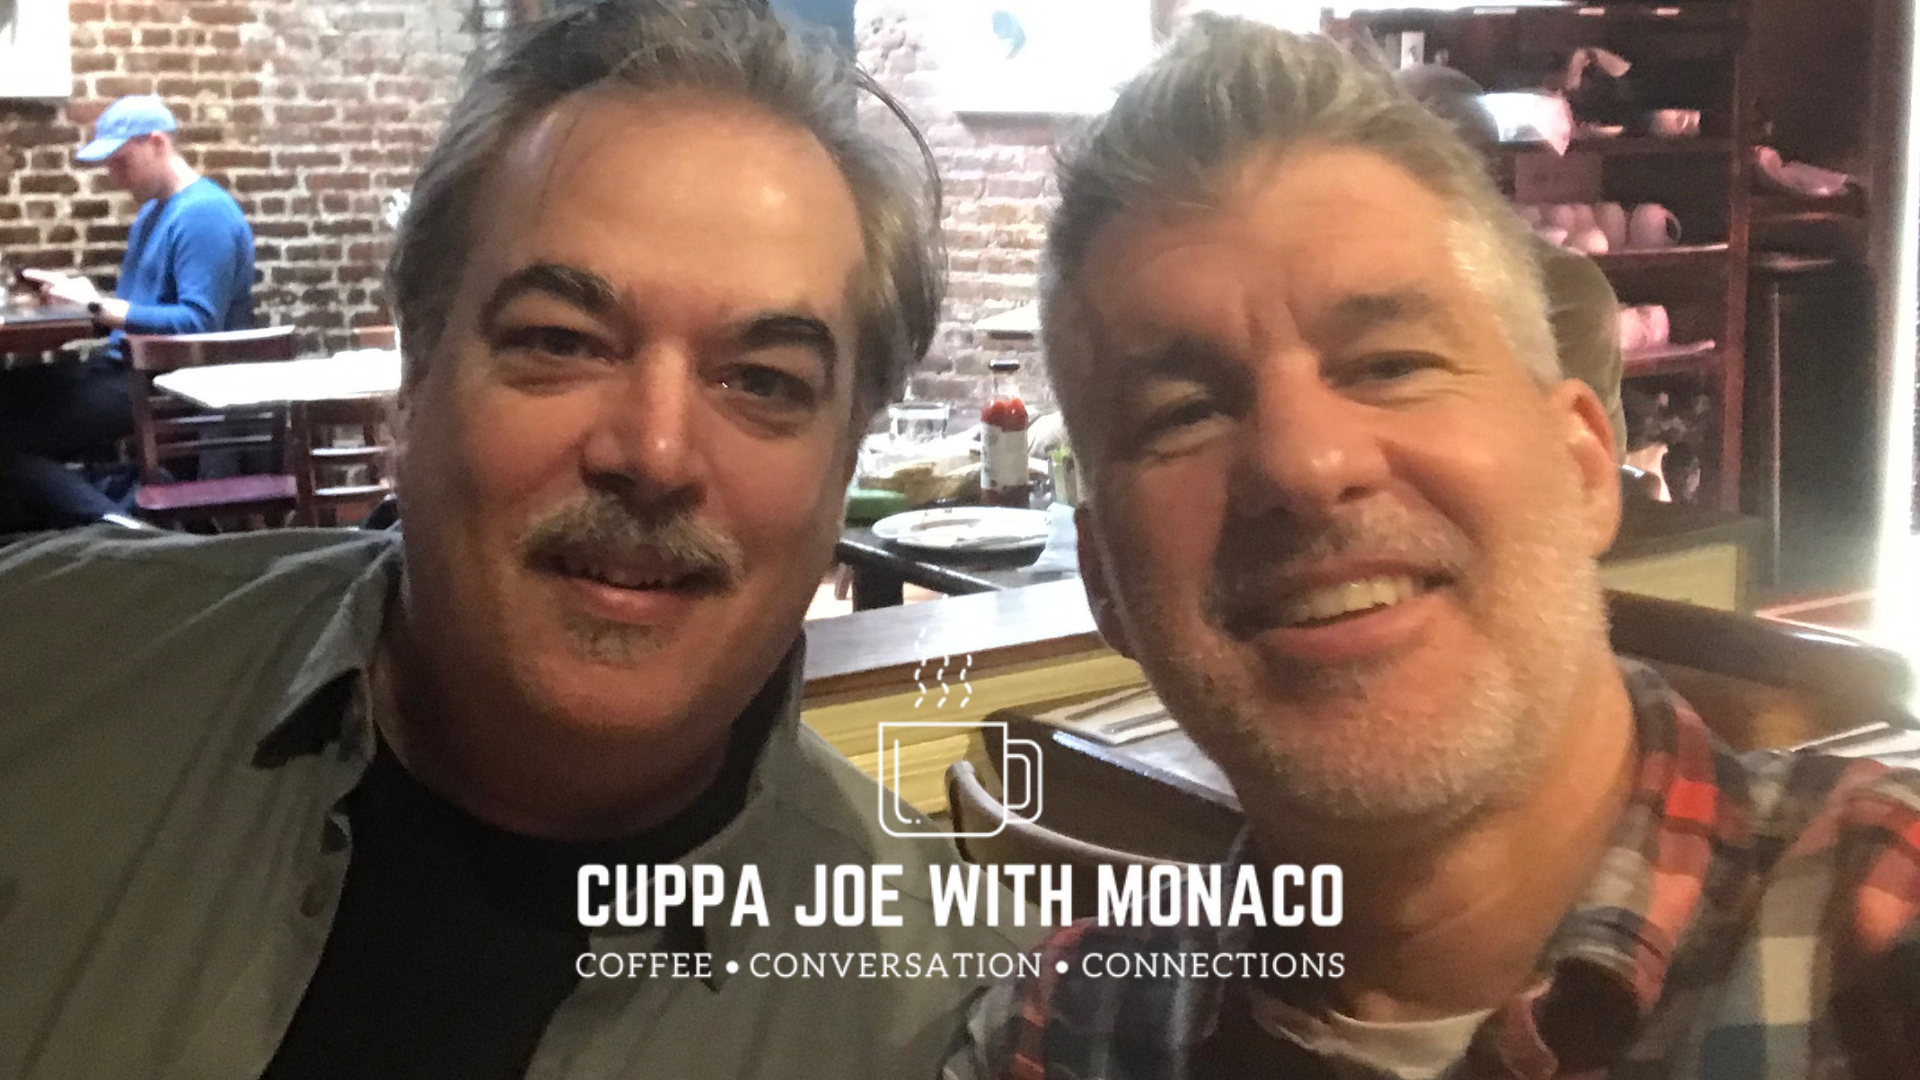 Pictured: Bob Ciosek, Founder/CEO of World's Greatest, and I talking sports at the Cupping Room SoHo in NYC. Bob, being the visual guy he is, stops pouring cream in his coffee when it matches the color of a paper grocery bag.